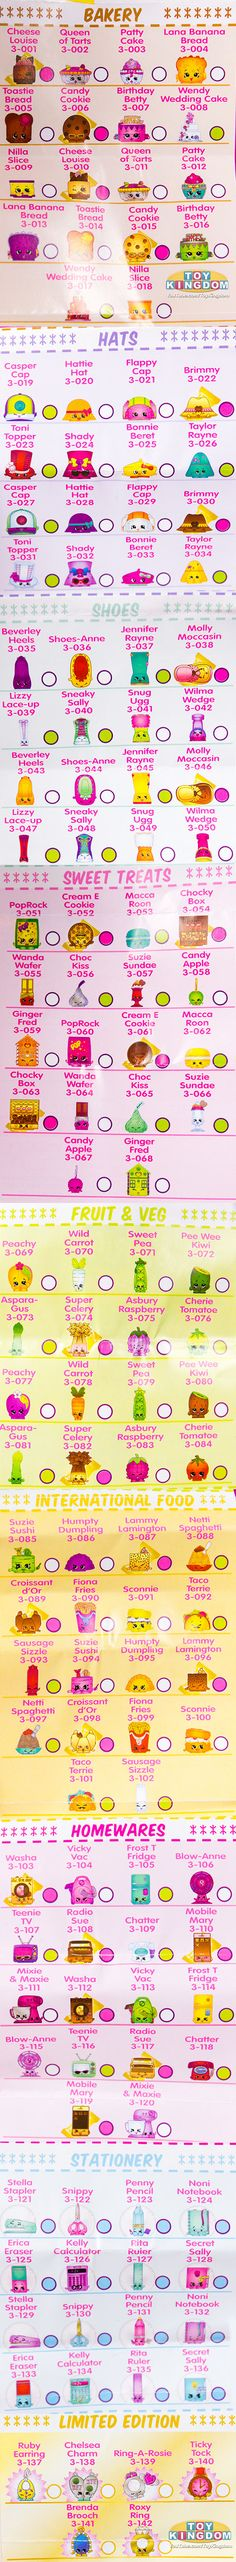 Here is the Shopkins Season 3 list, it has been pieced together to make it easy for you to check out all of the latest Shopkins. In season 3 there are the following categories: Bakery Hats Shoes Sweet Treats Fruit & Veg International Food Homewares Stationery Limited Edition Check out the checklist/collectors guide out below! …